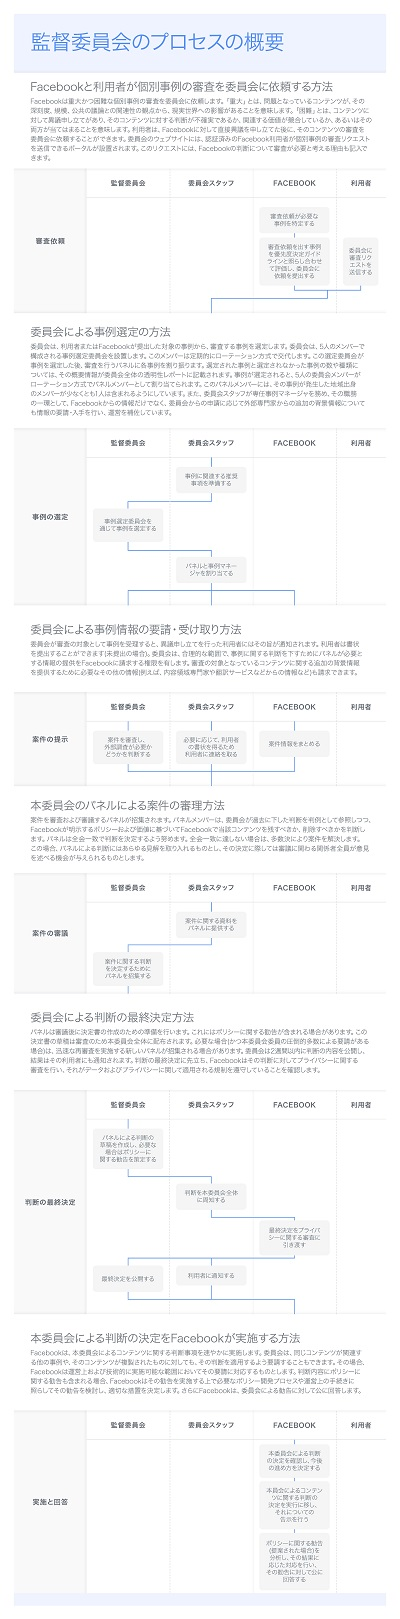 Process_Decision Flow_v8 copy_ONLINE_ja_JP